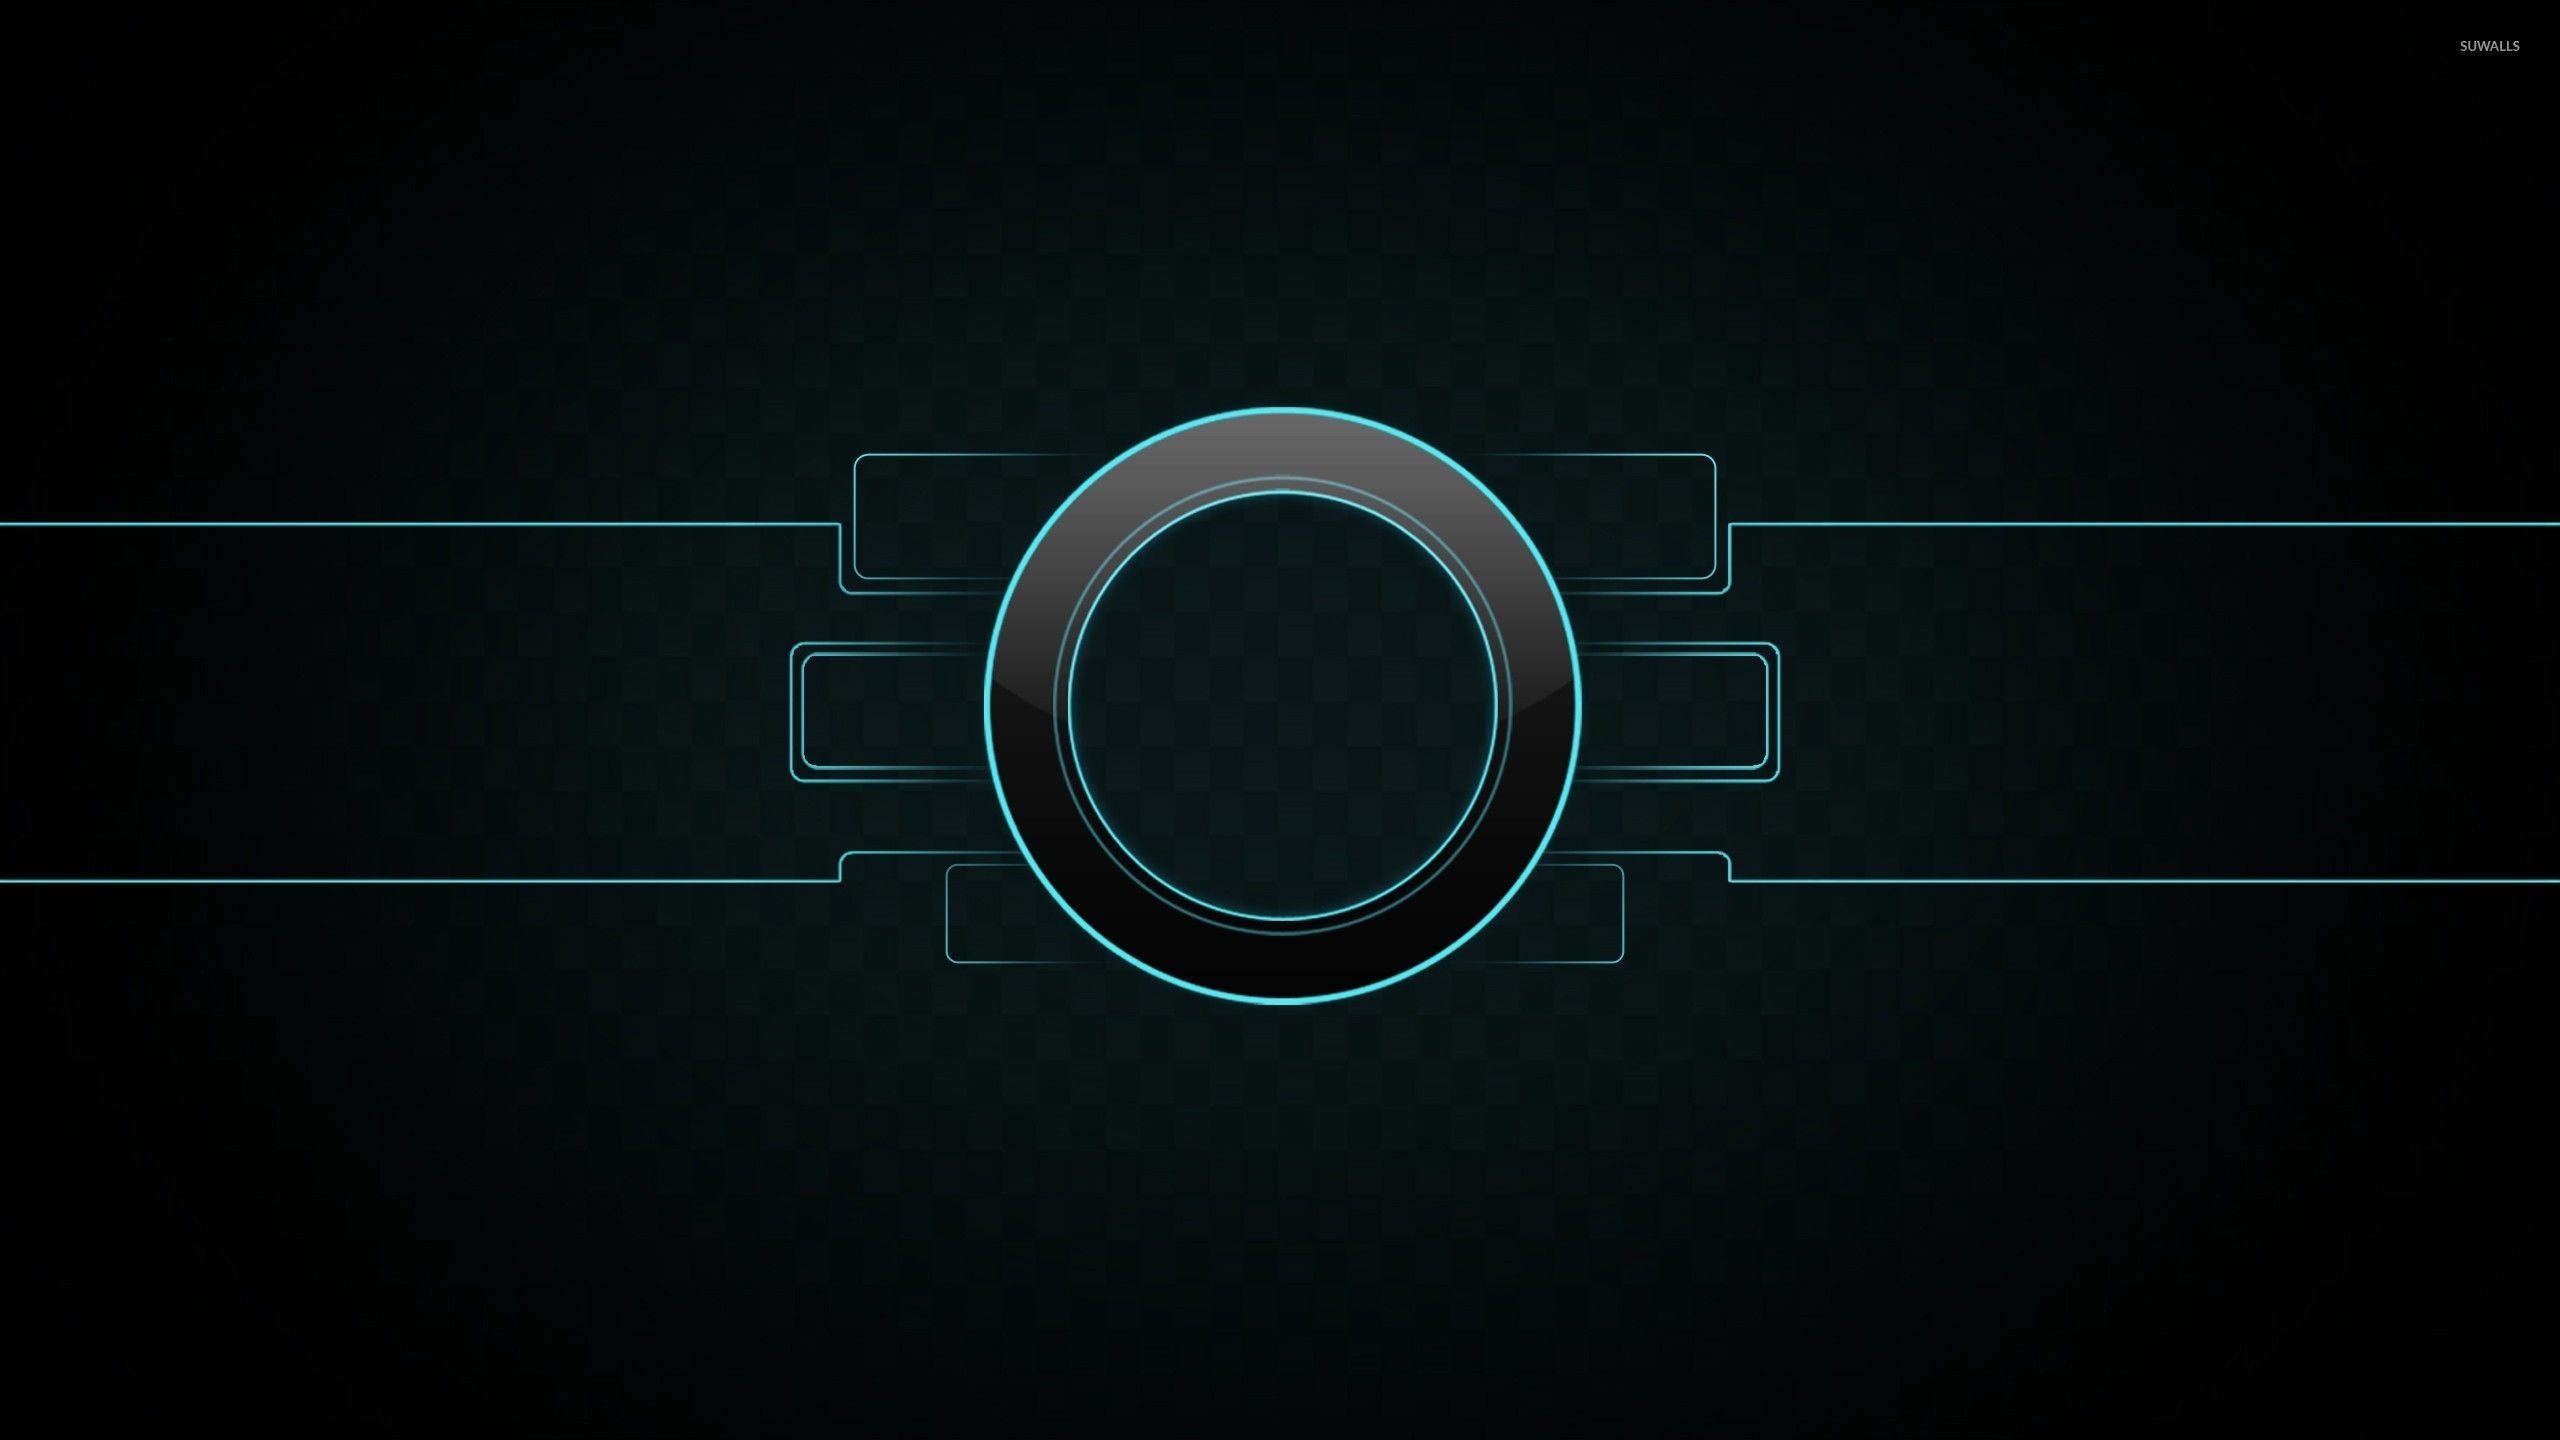 Neon outlined circle wallpaper - Abstract wallpapers - #23147